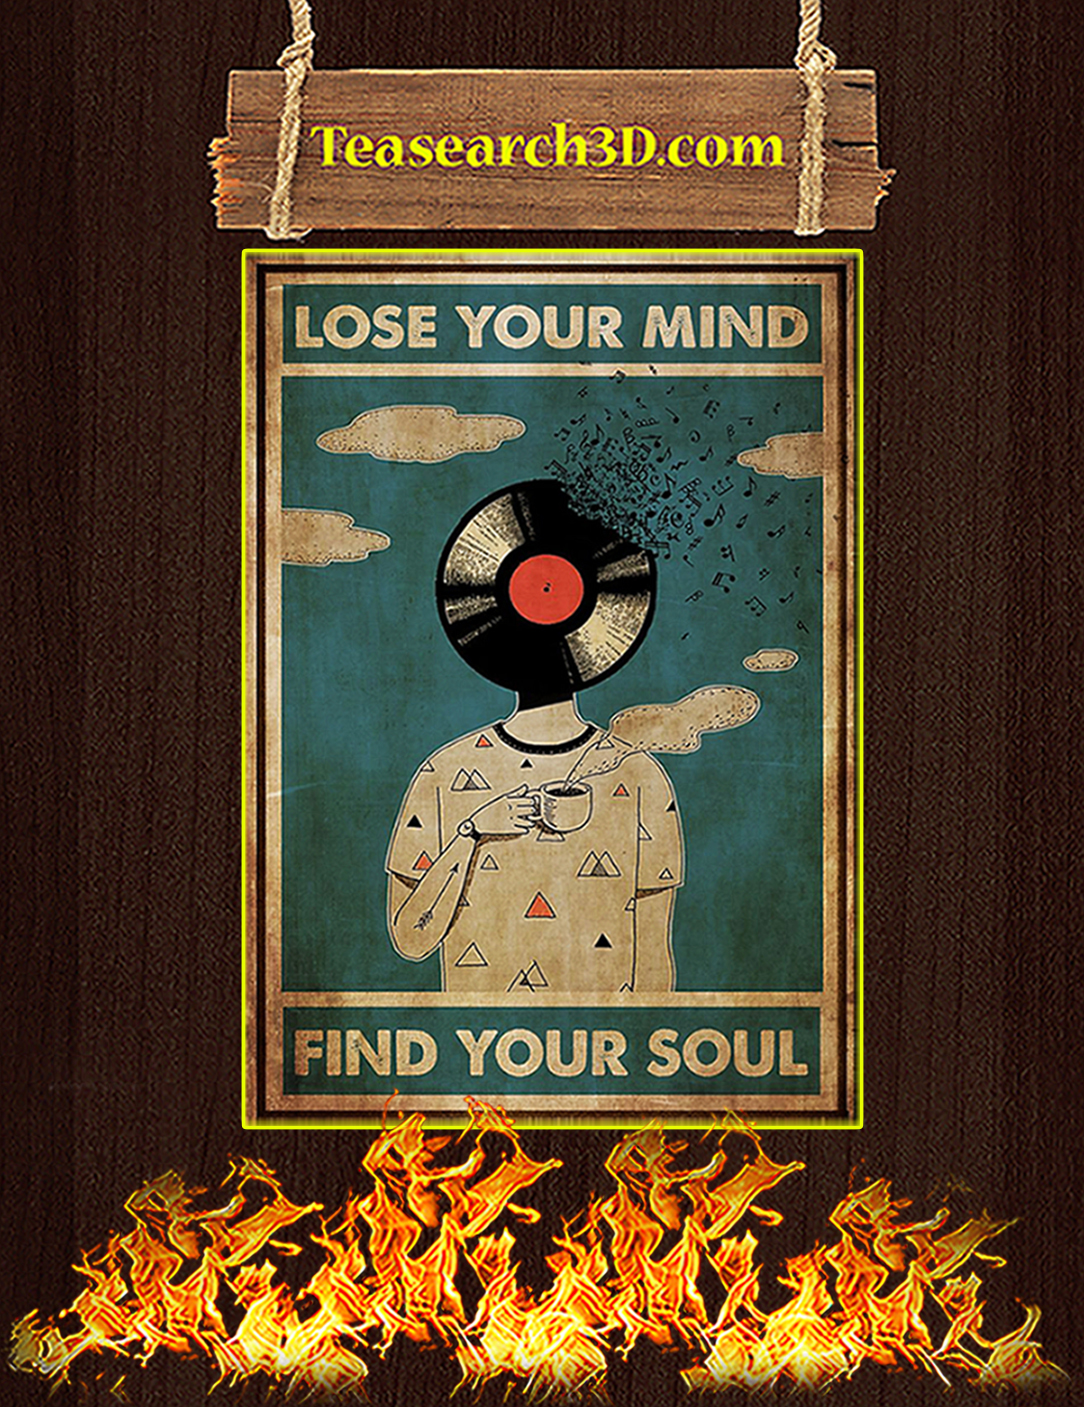 DJ lose your mind find your soul poster A2